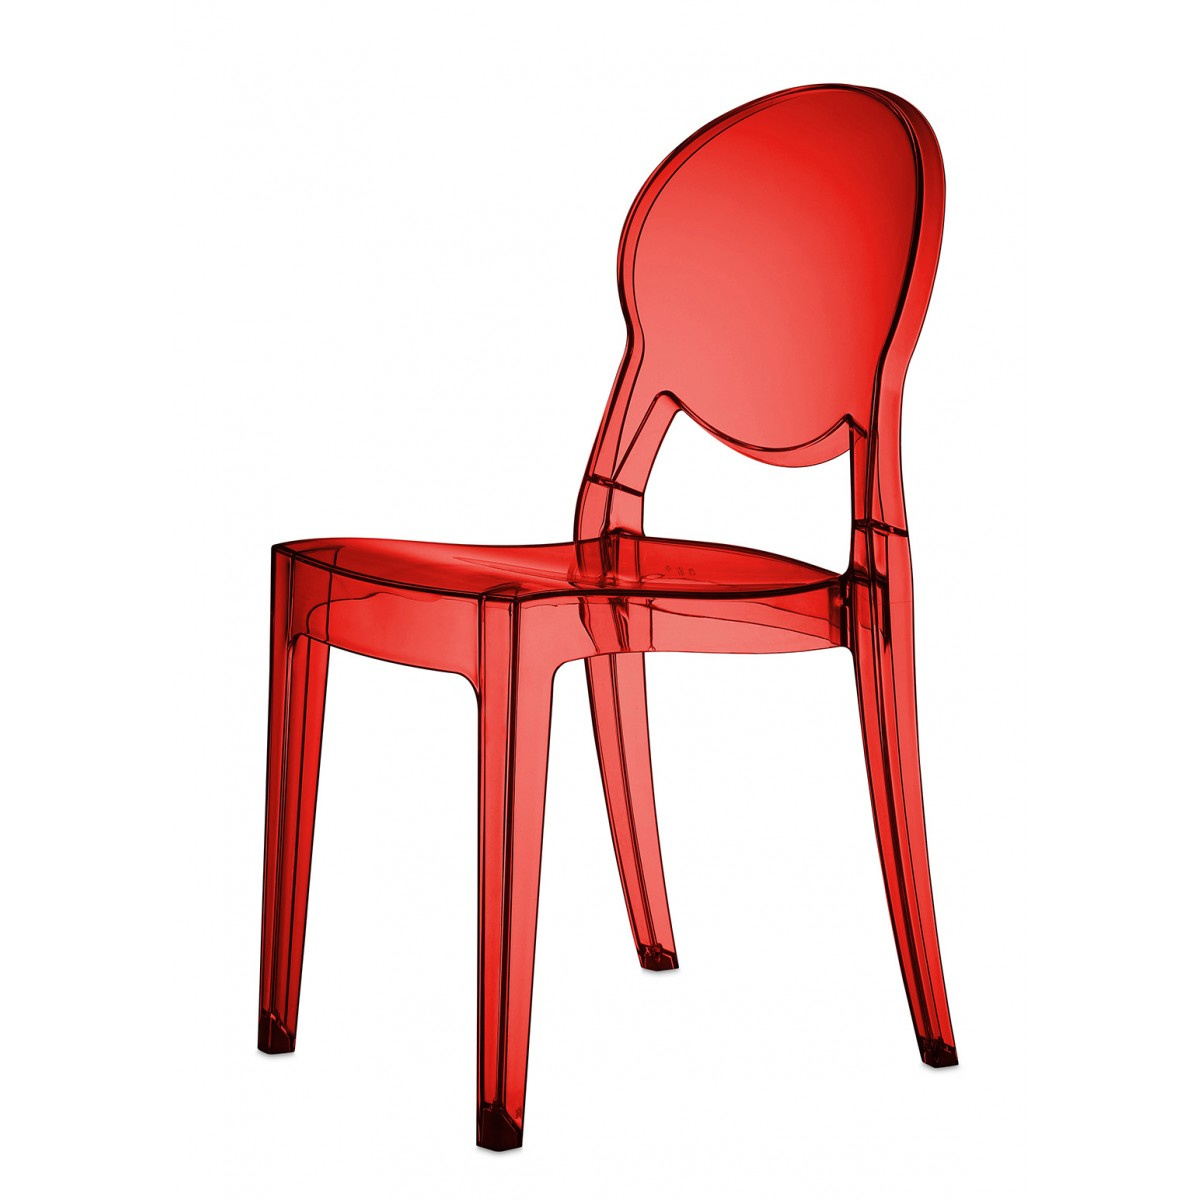 Chaise design rouge translucide polycarbonate mooviin - Chaise rouge transparente ...